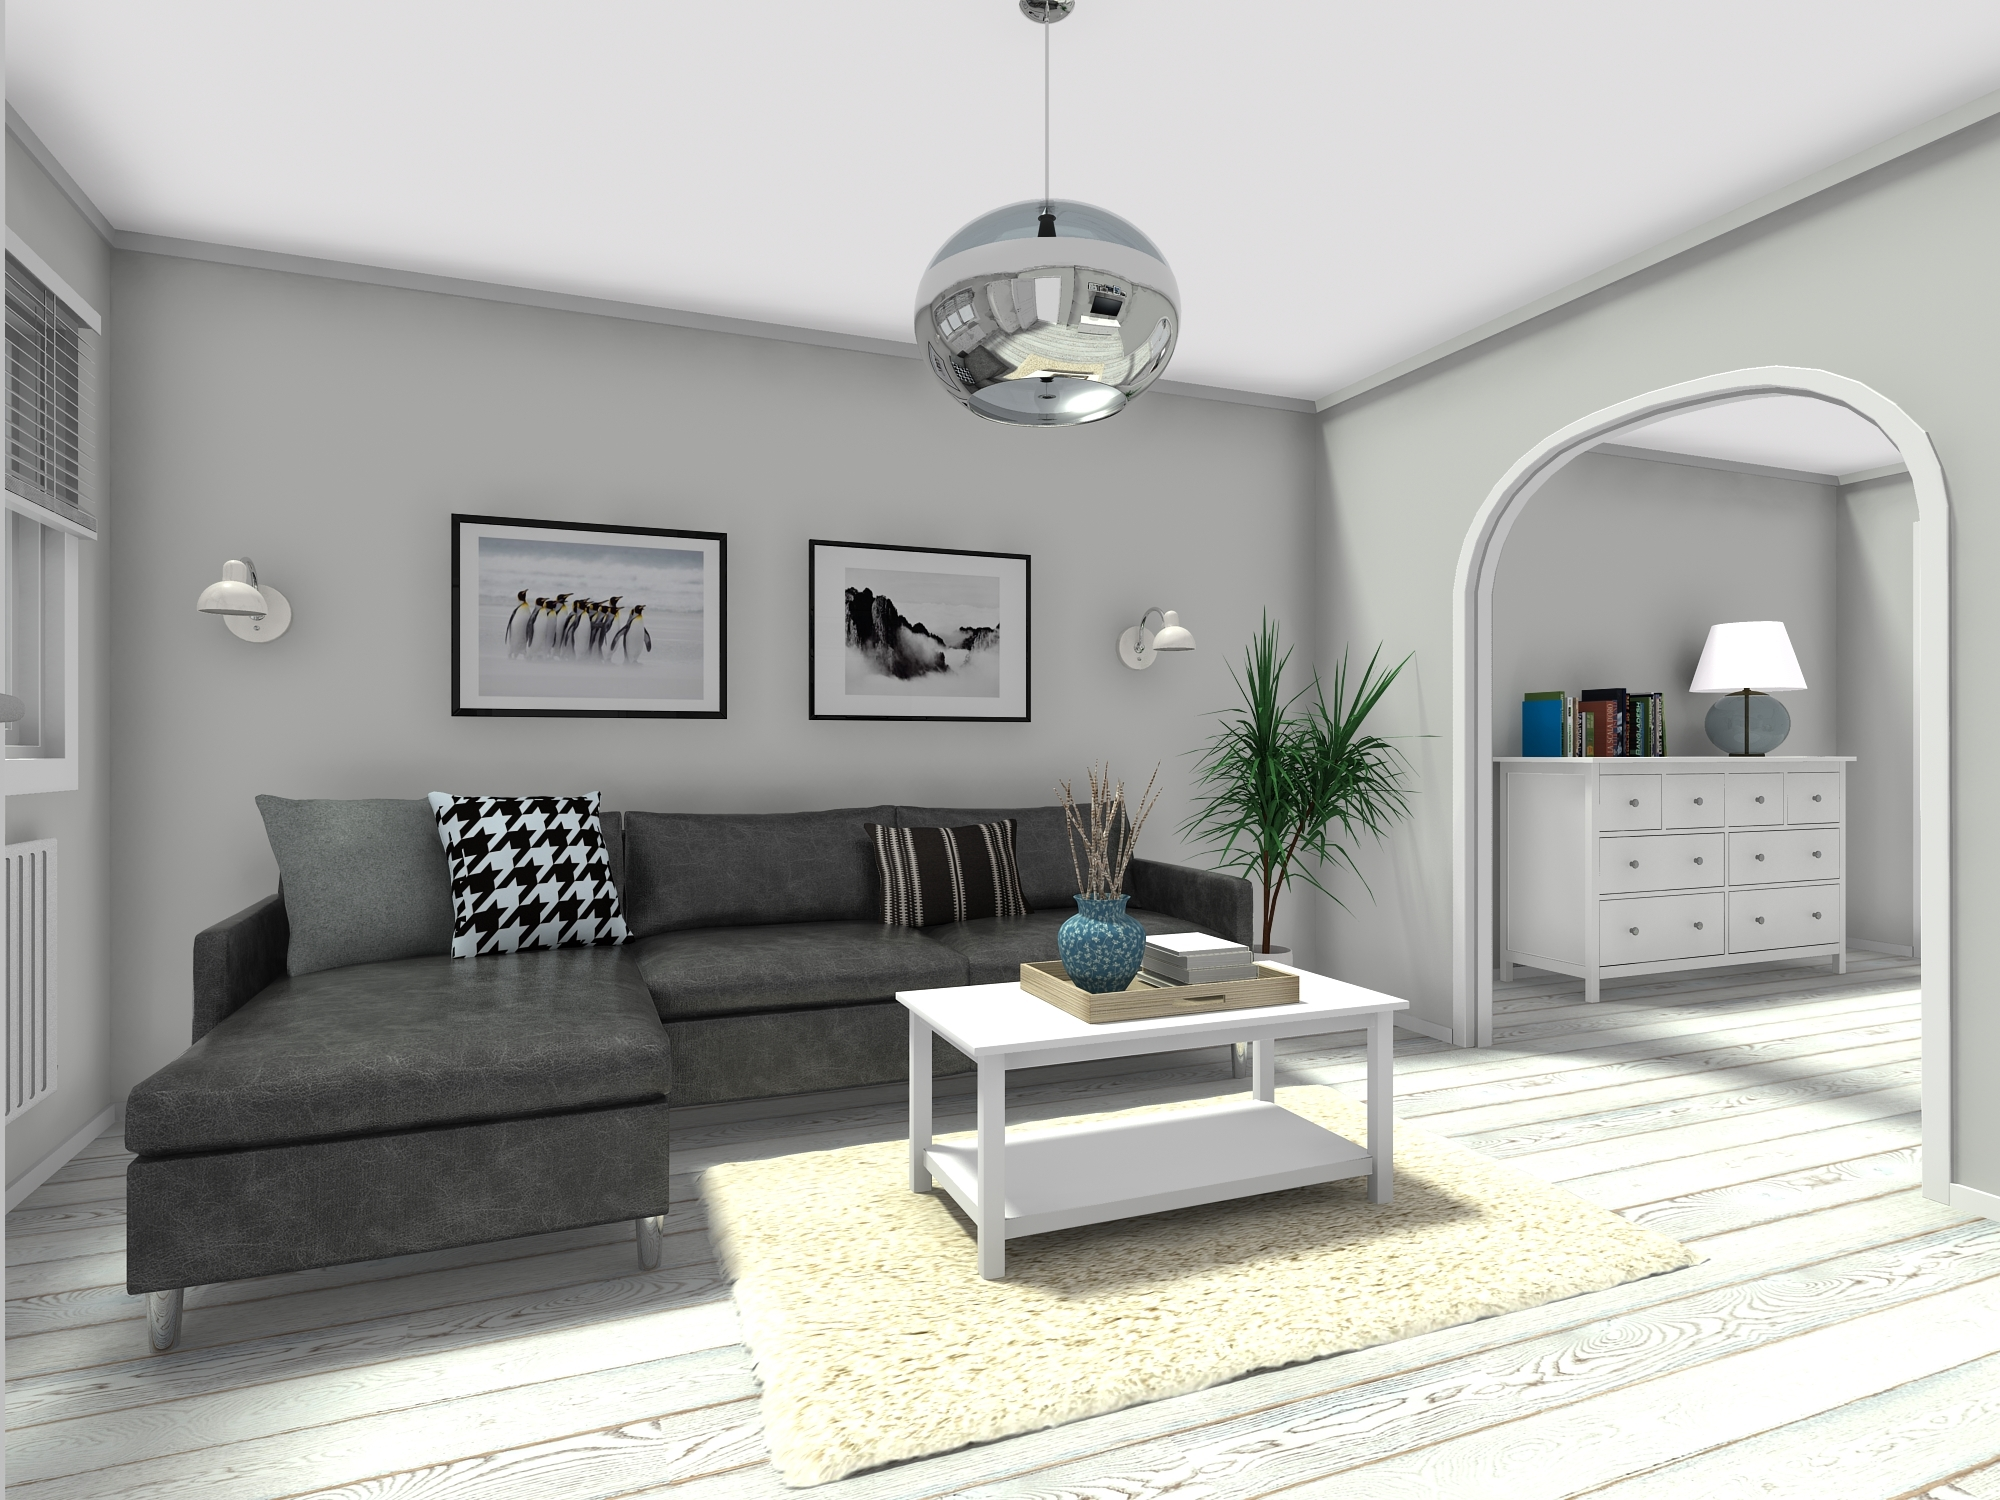 online interior design nottingham